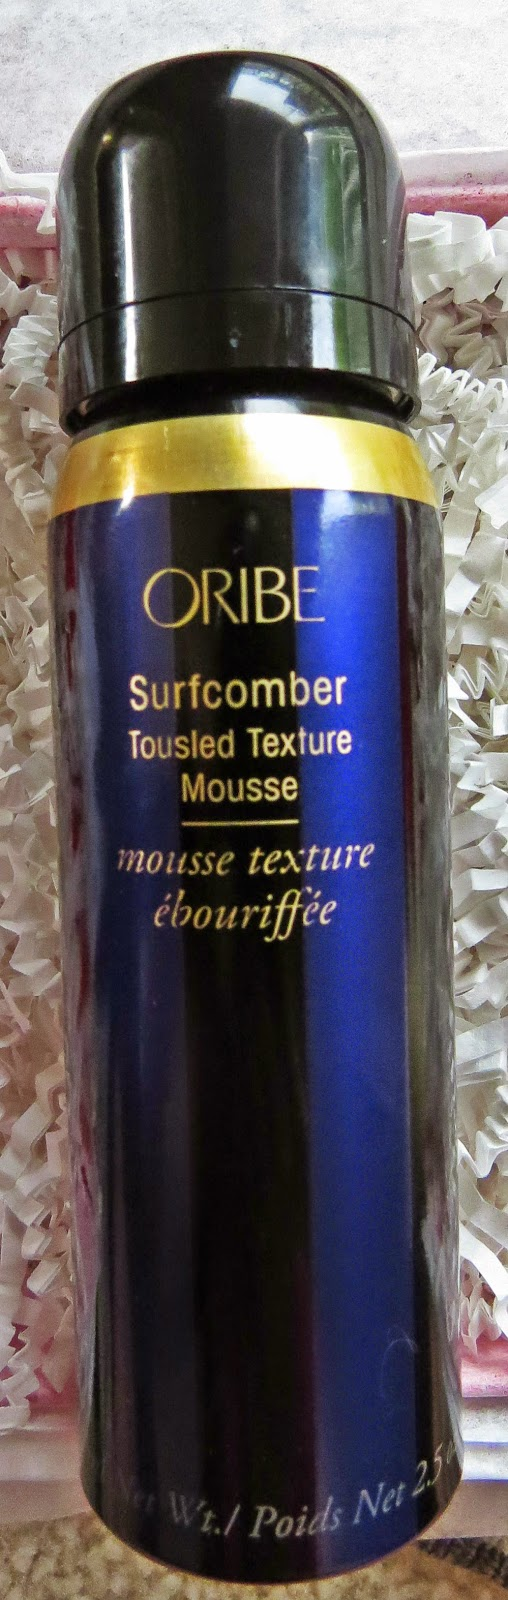 Oribe Travel Surfcomber